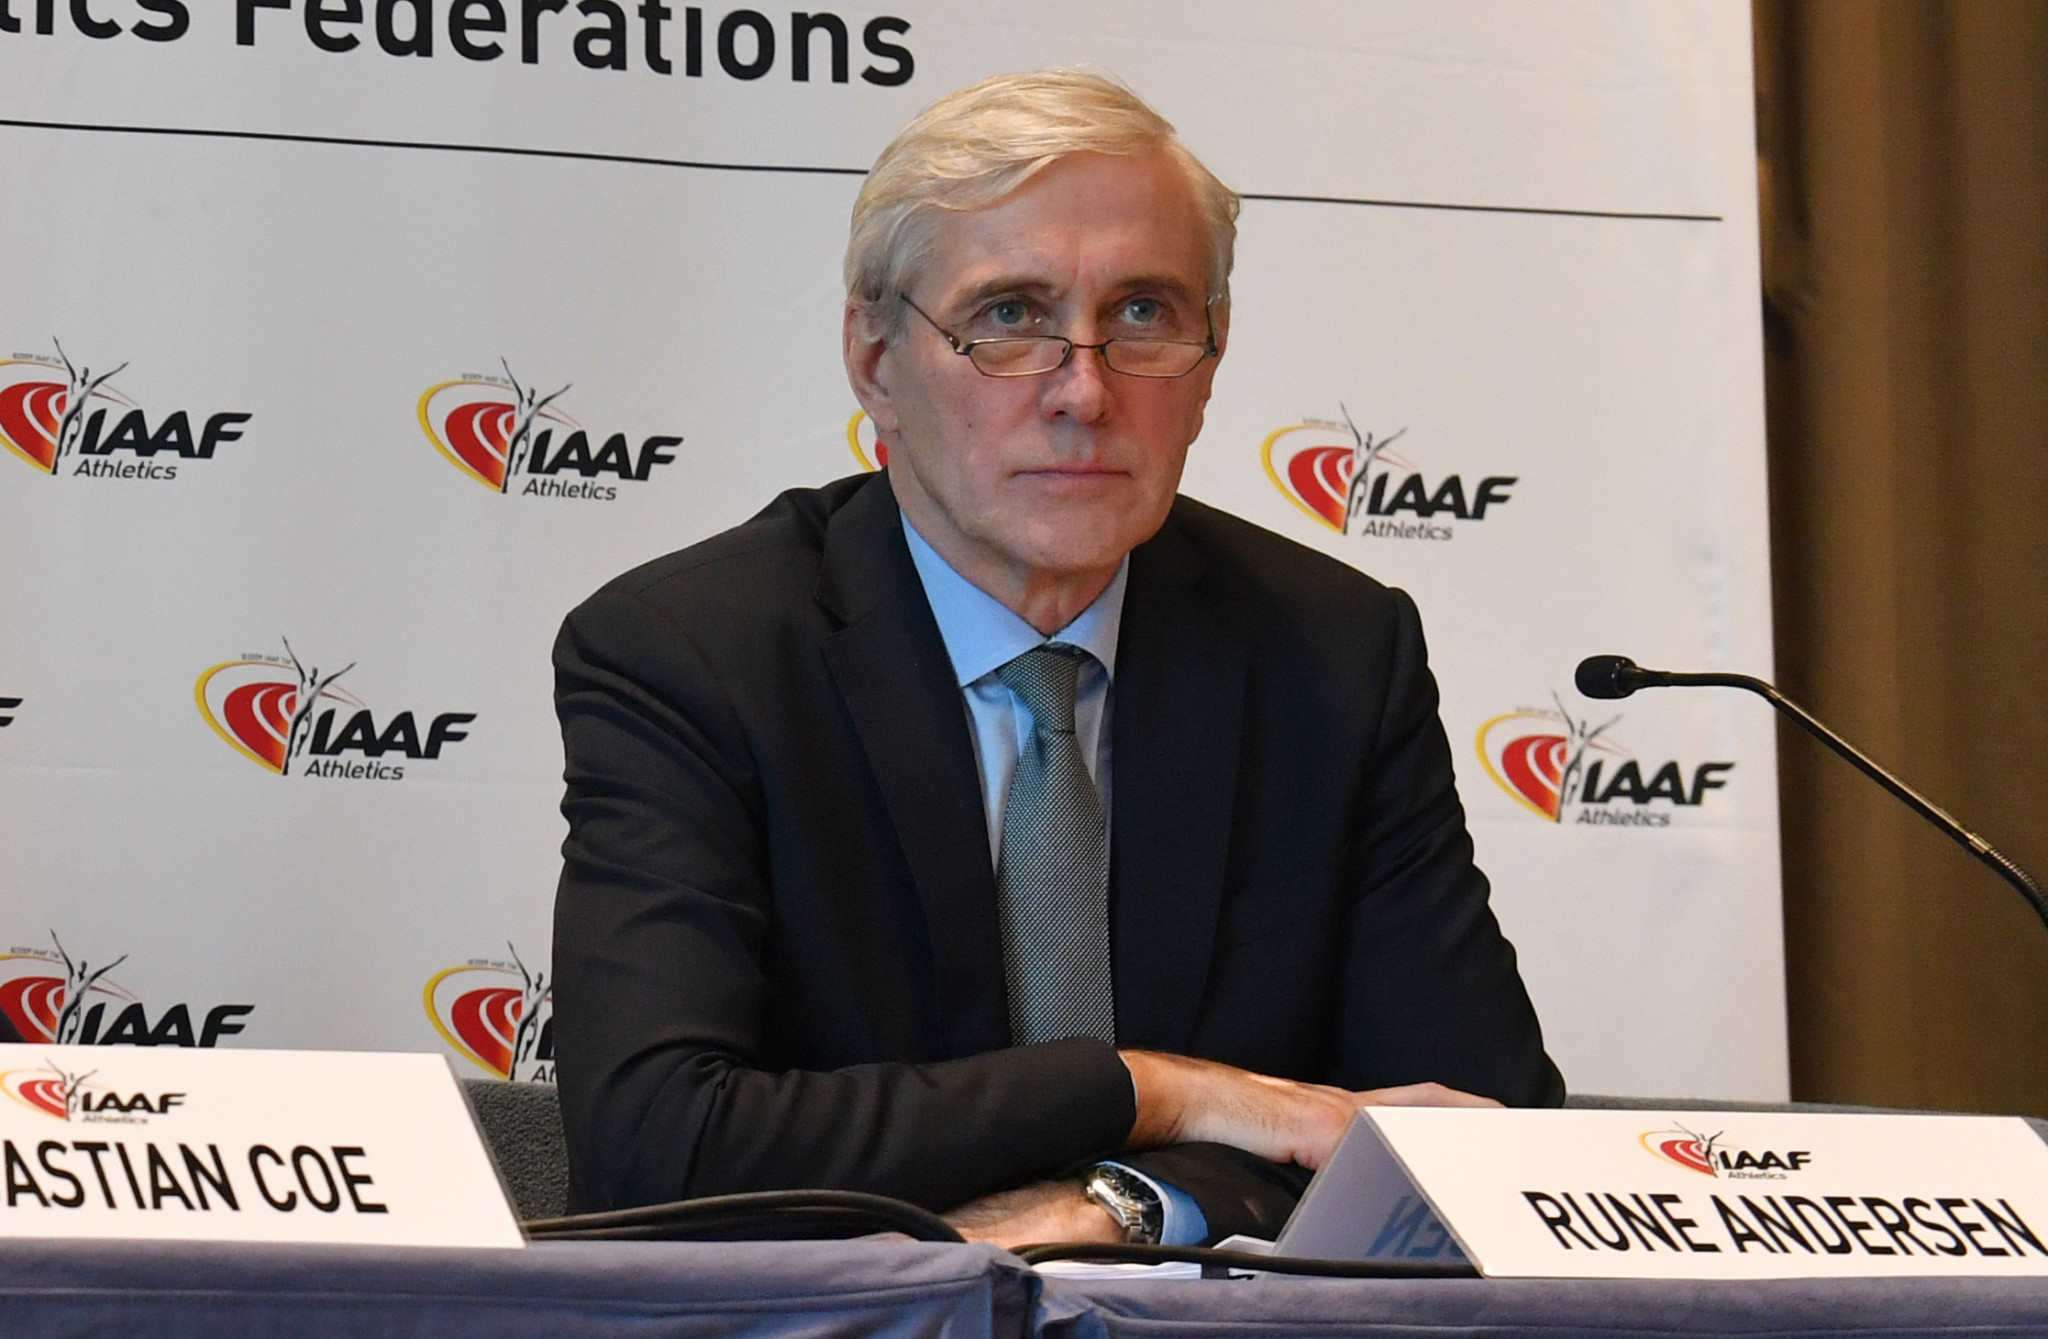 Rune Andersen stated the IAAF should consider further measures against RusAF should progress towards reinstatement not be made ©Getty Images